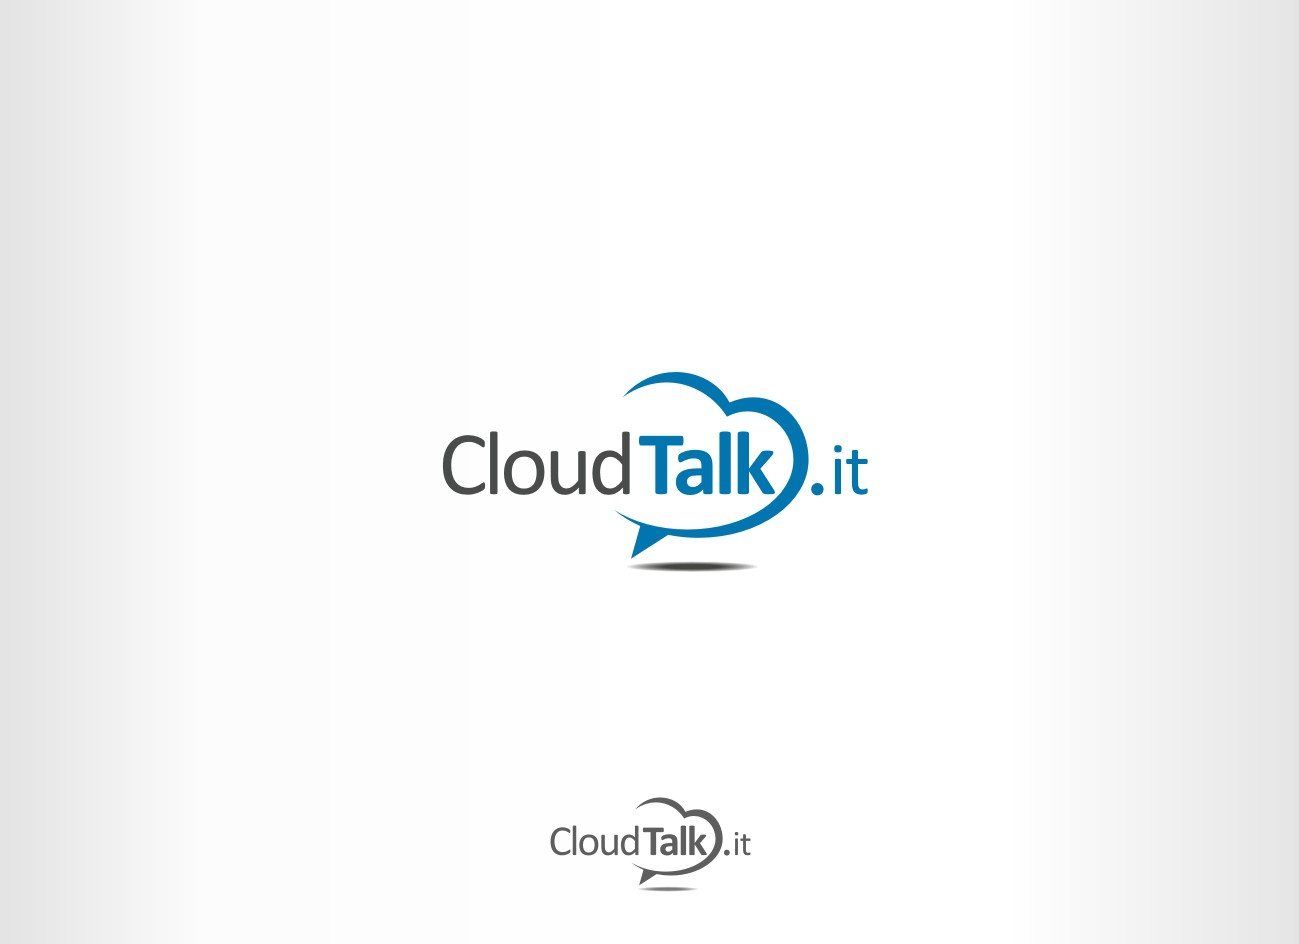 New logo wanted for CloudTalk.it